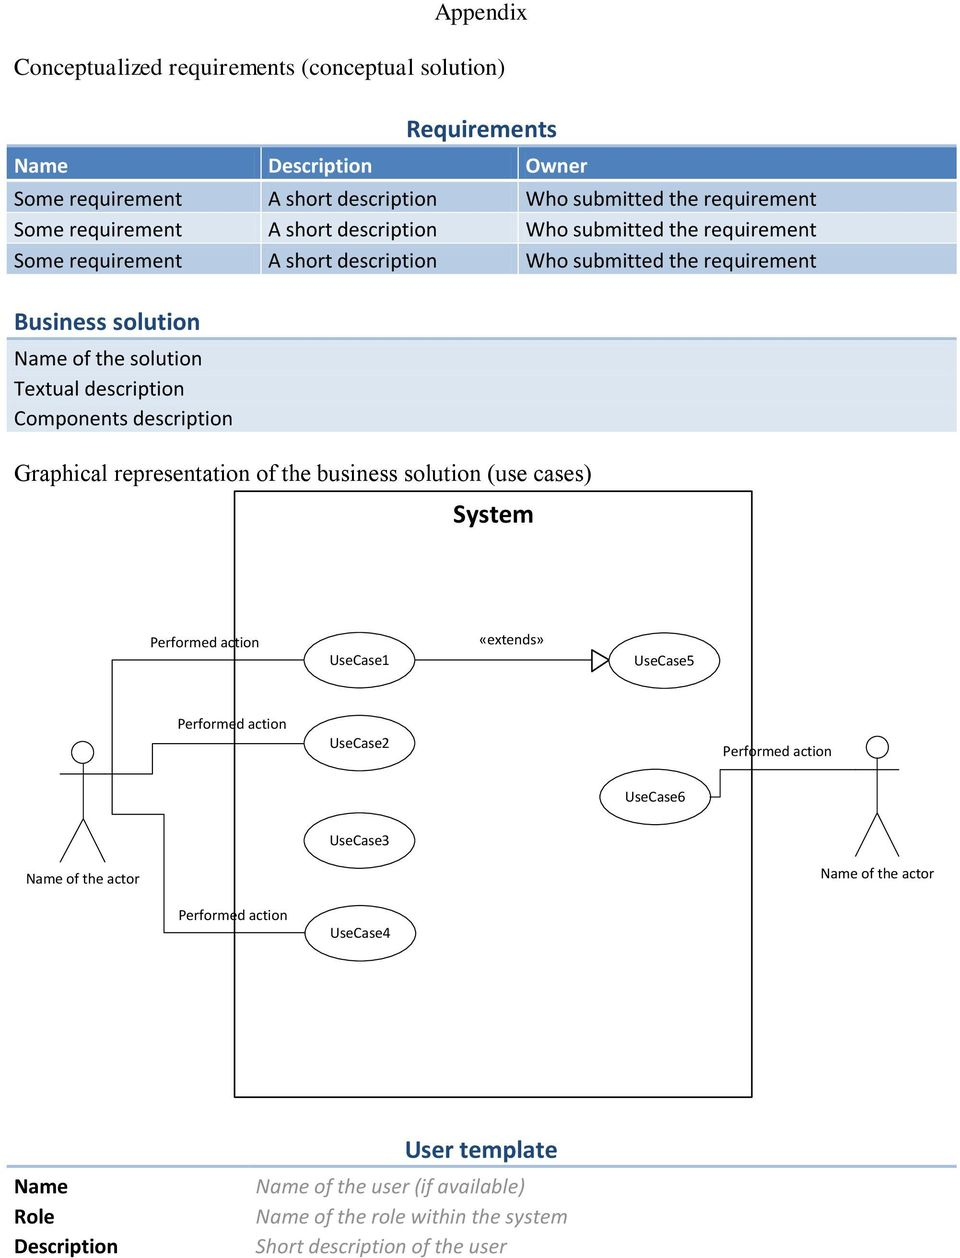 description Graphical representation of the business solution (use cases) System Performed action UseCase «extends» UseCase5 Performed action UseCase2 Performed action UseCase6 UseCase3